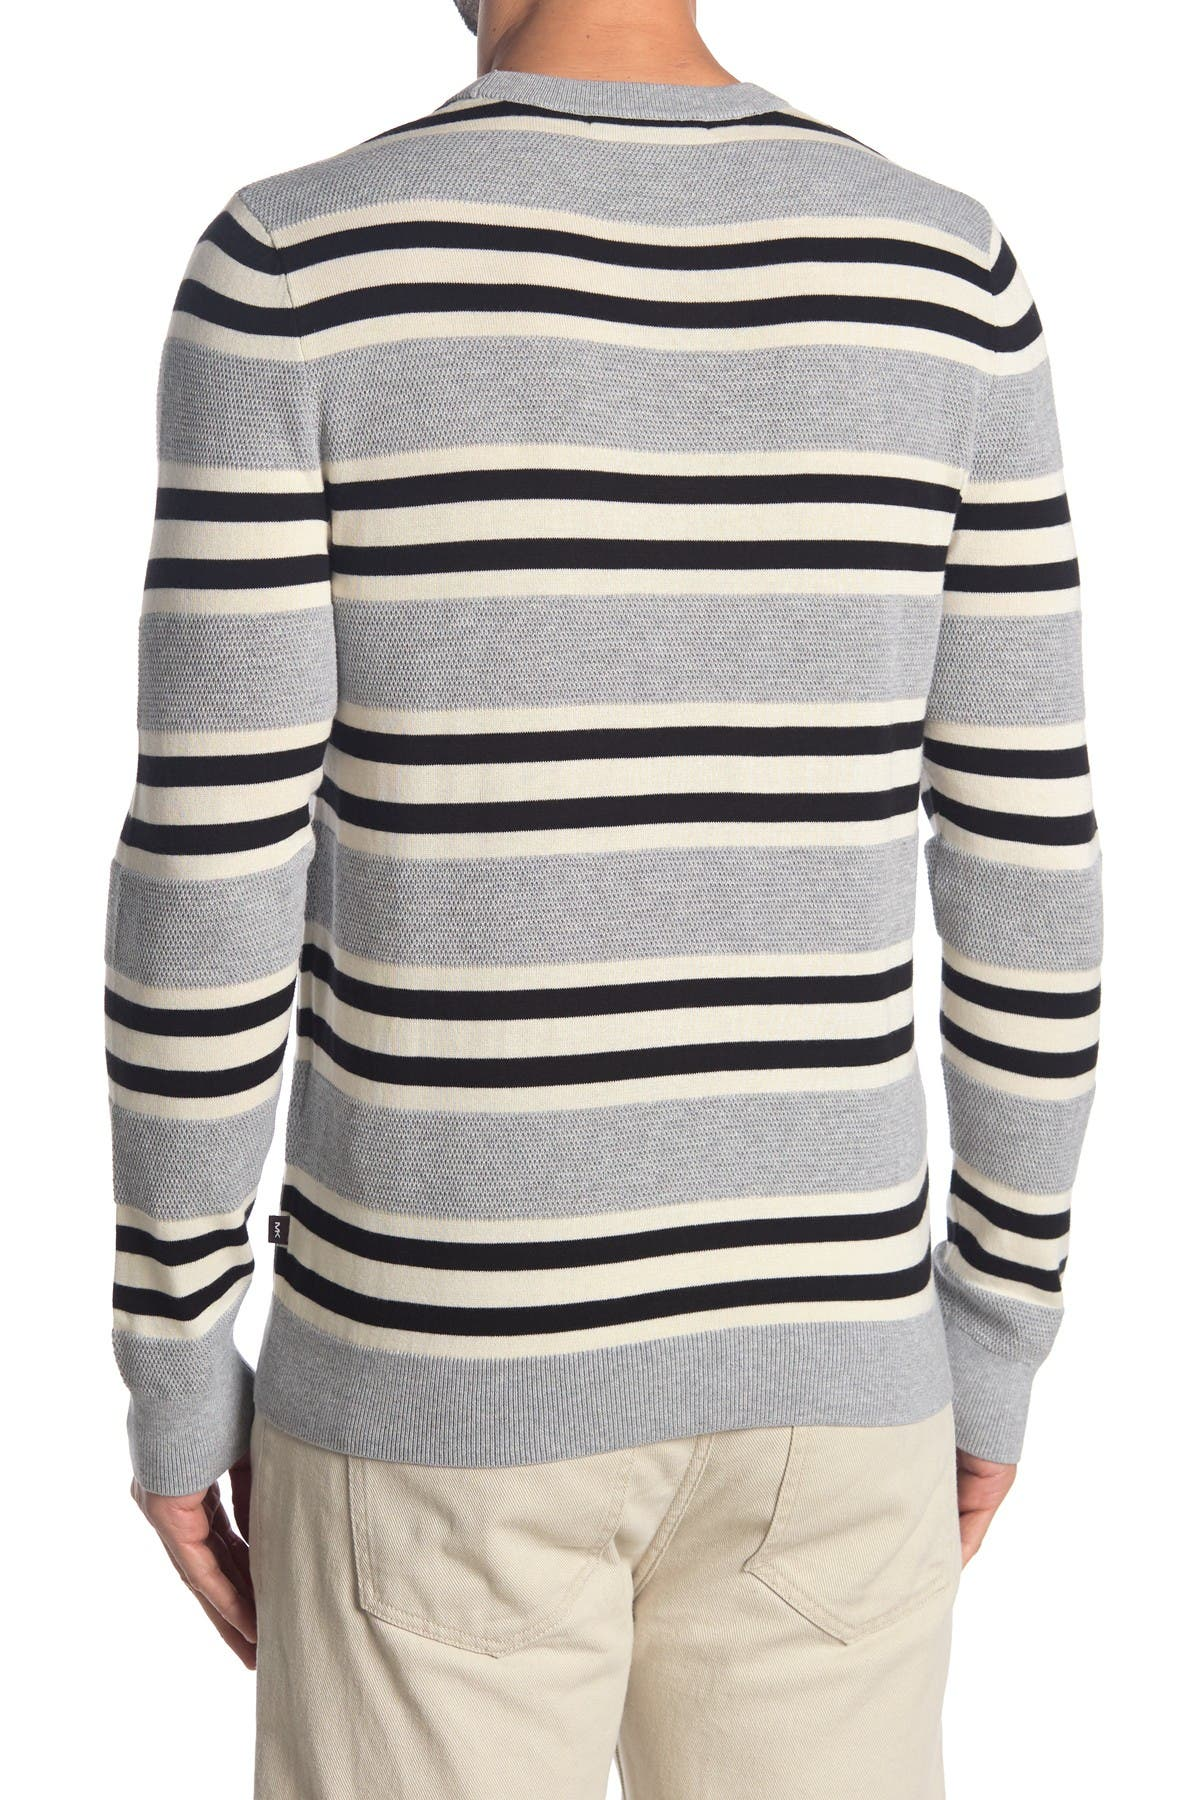 Image of Michael Kors Stripe Crew Neck Sweater